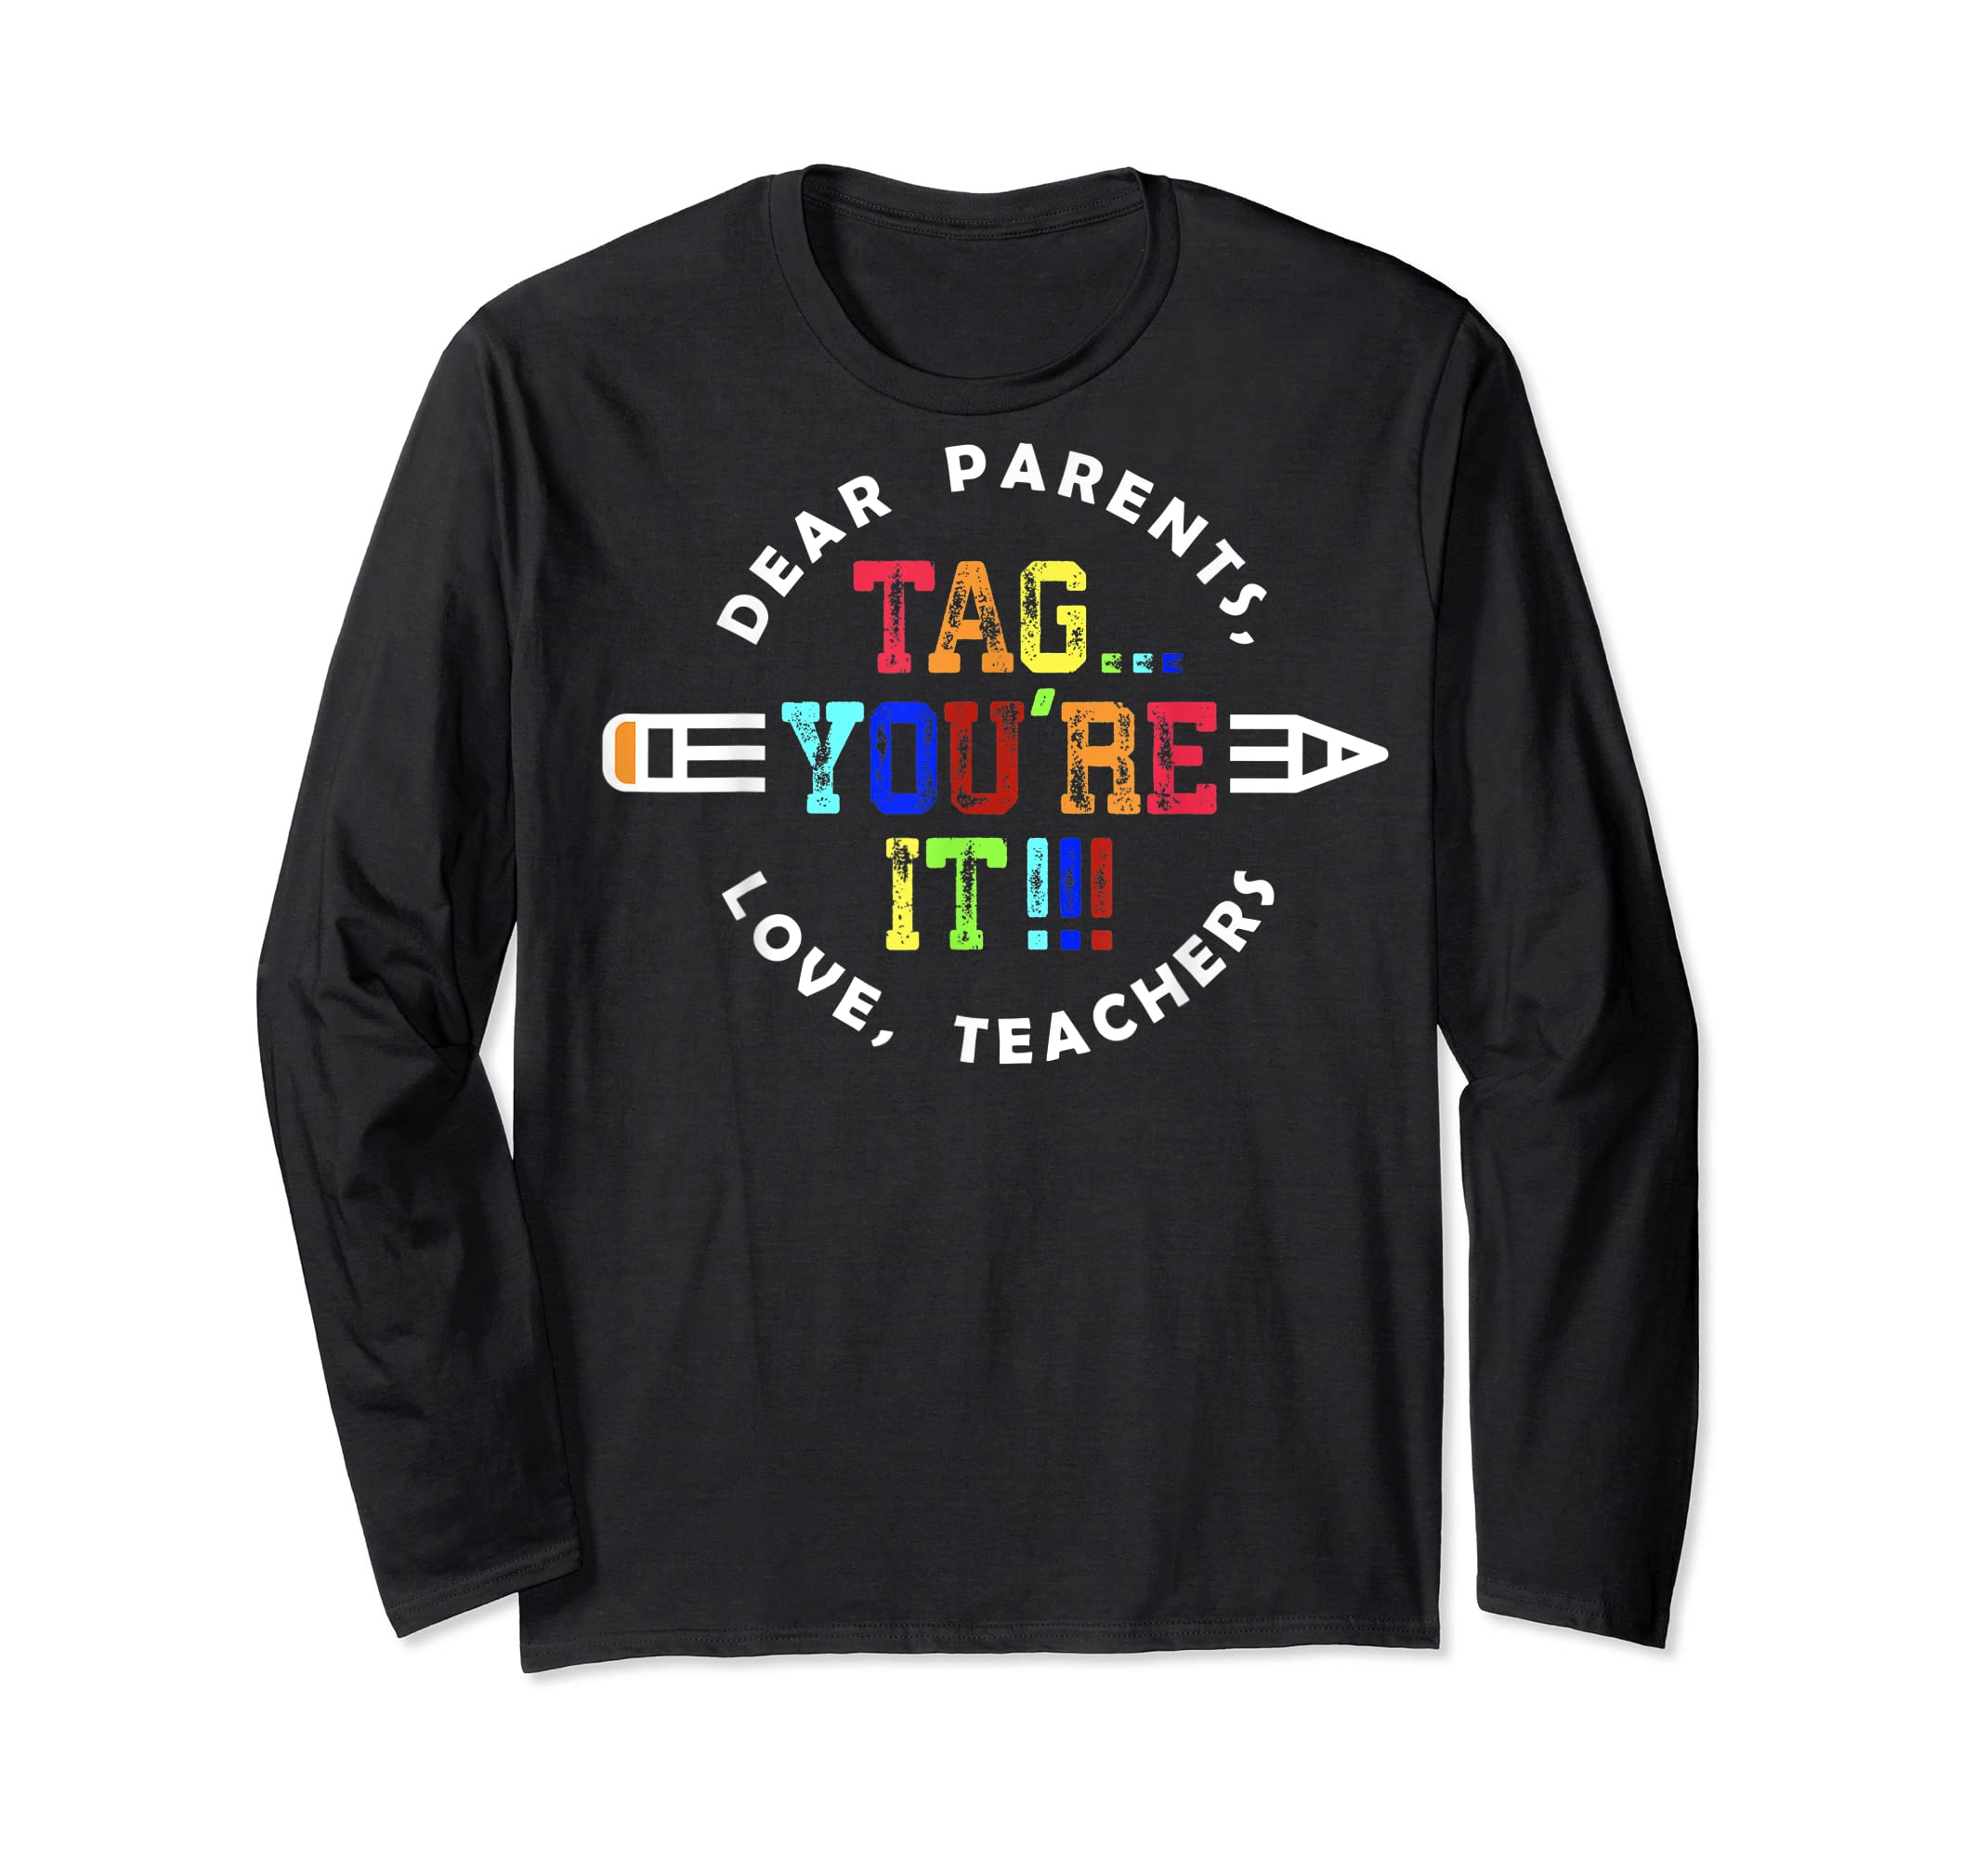 Teachers T-Shirts Dear Parents Tag You're It Love Great Gift-Long Sleeve-Black